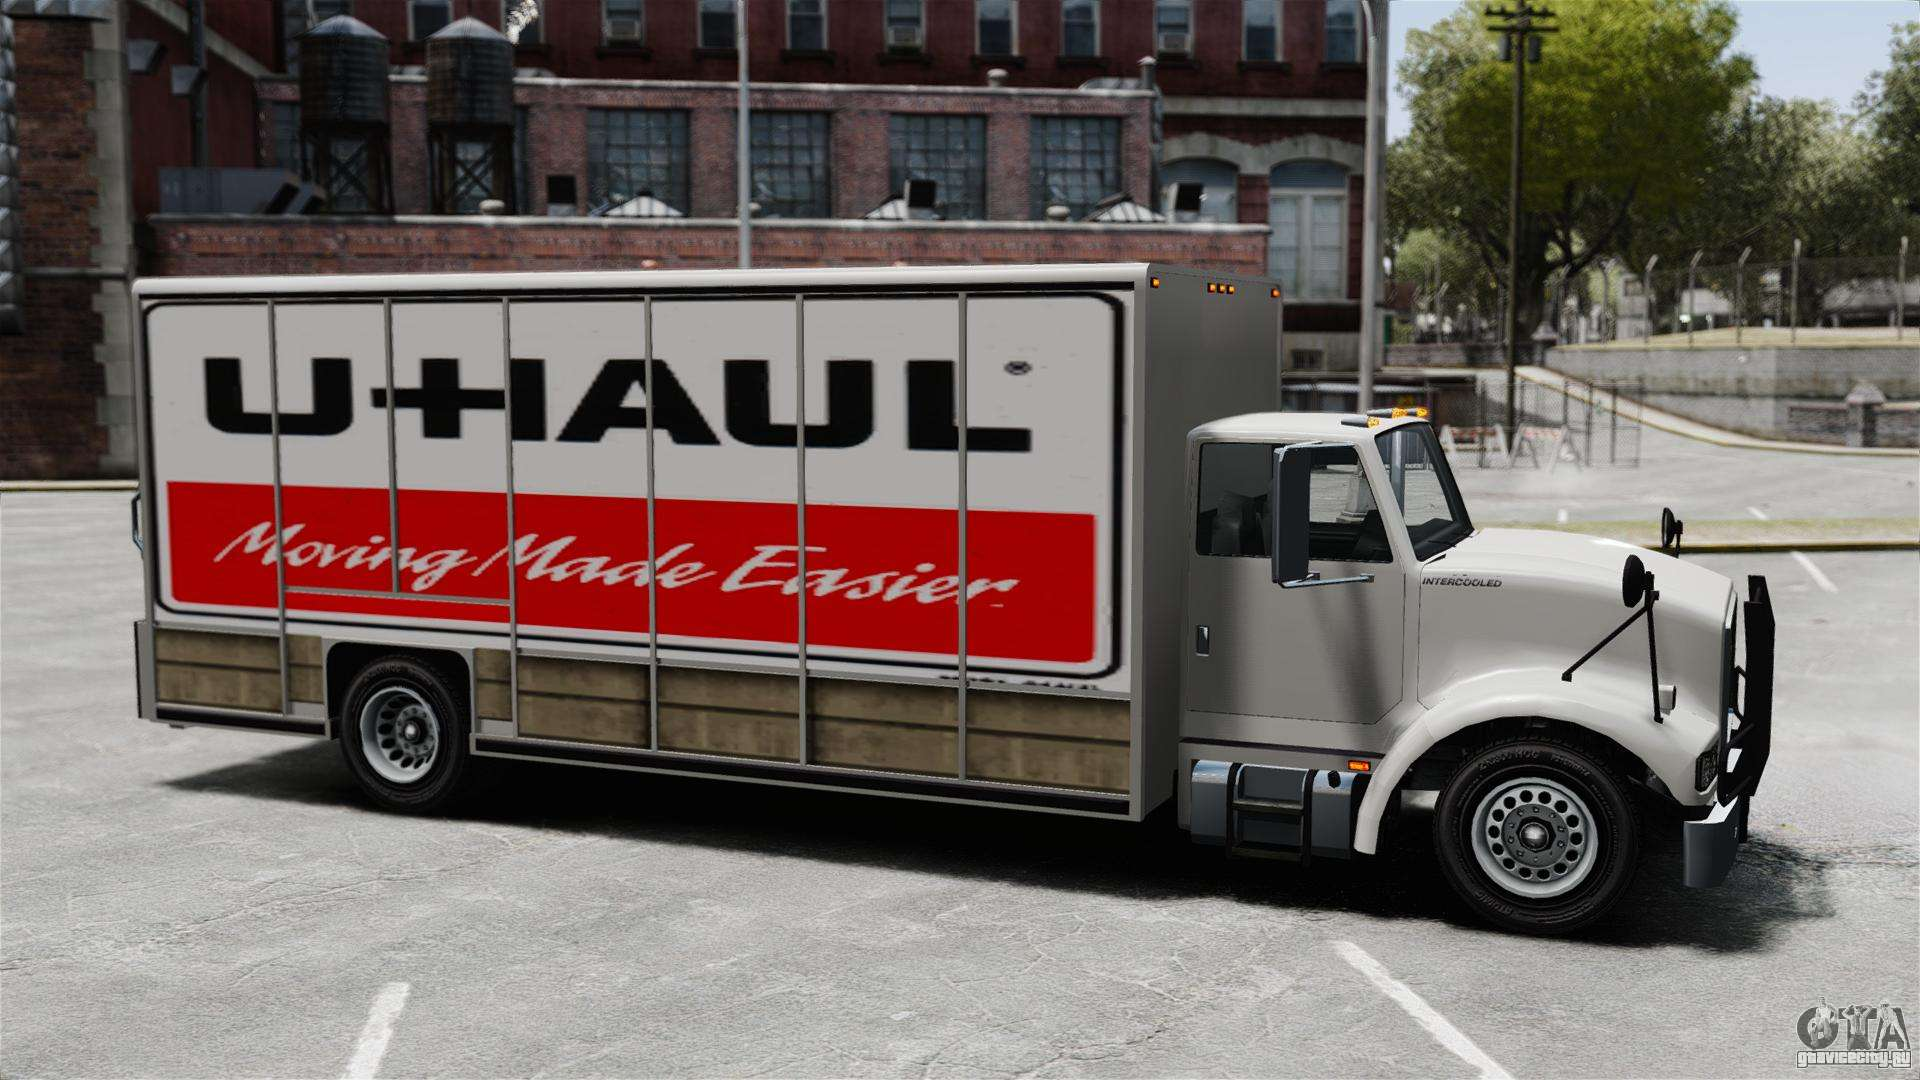 3d HD Wallpapers Uhaul